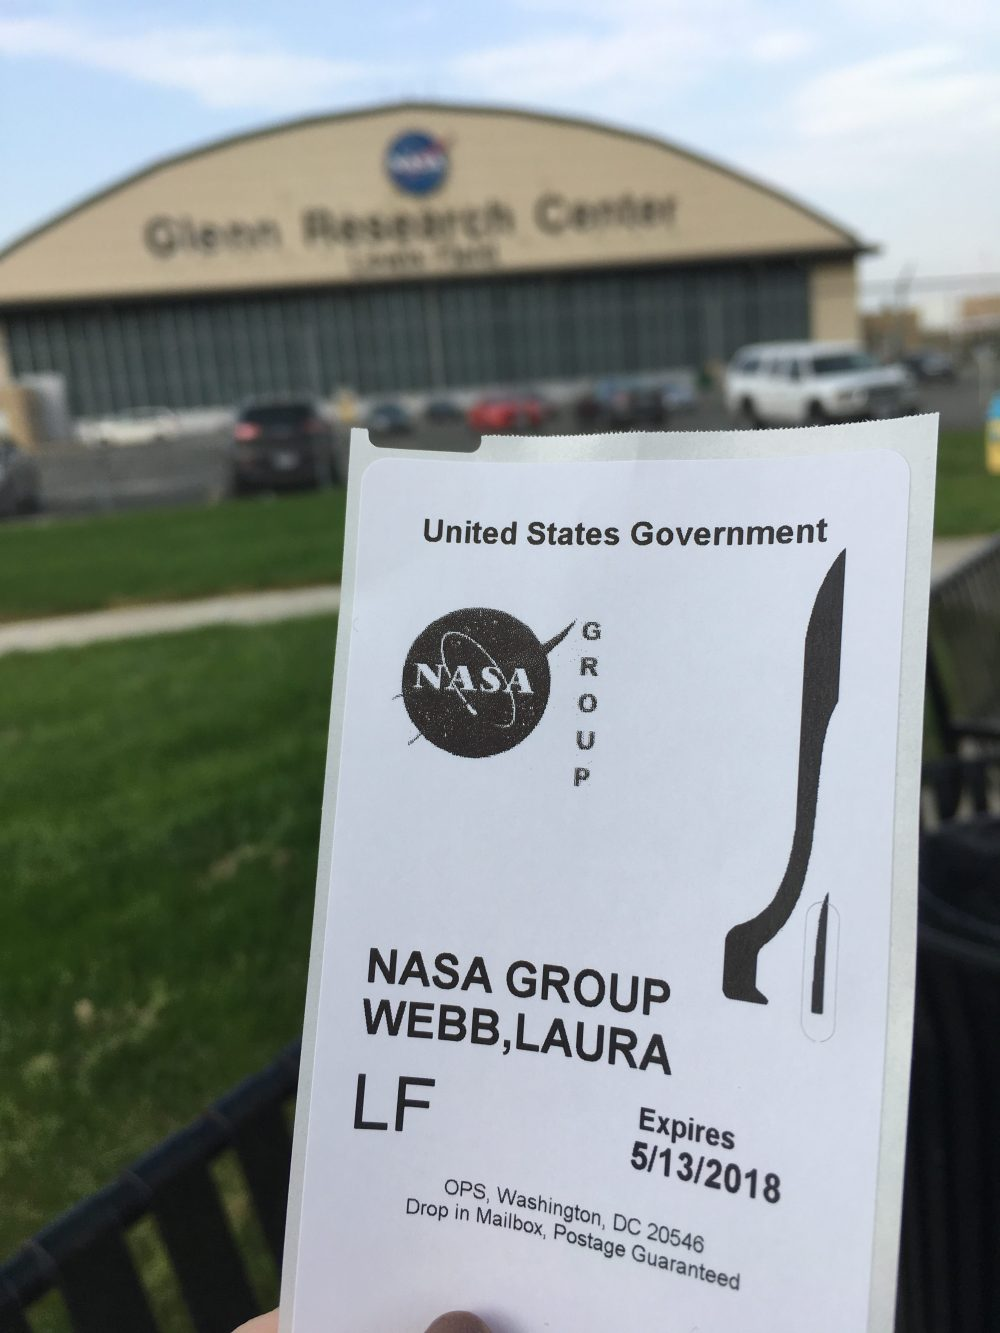 Admission ticket to the NASA Glenn Research Center, with one of the NASA Glenn buildings in the background